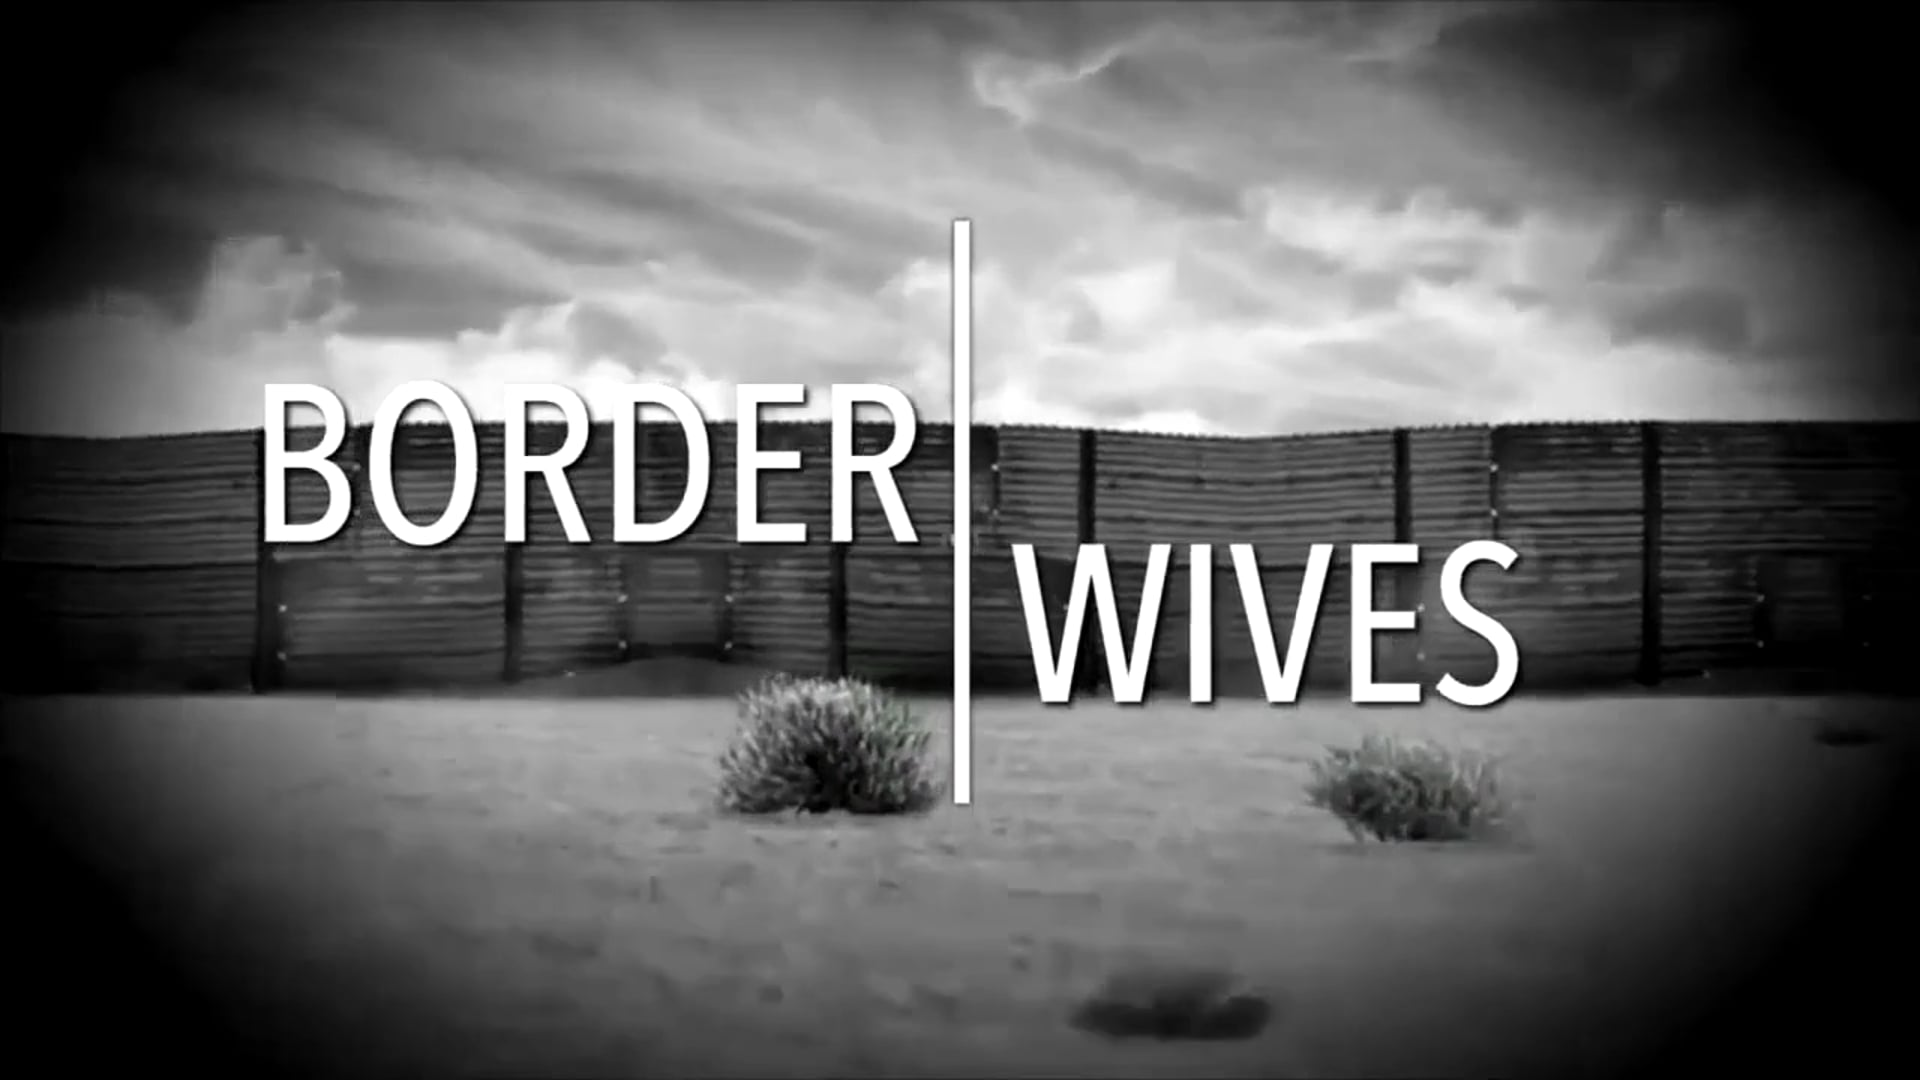 BORDER WIVES - Sizzle